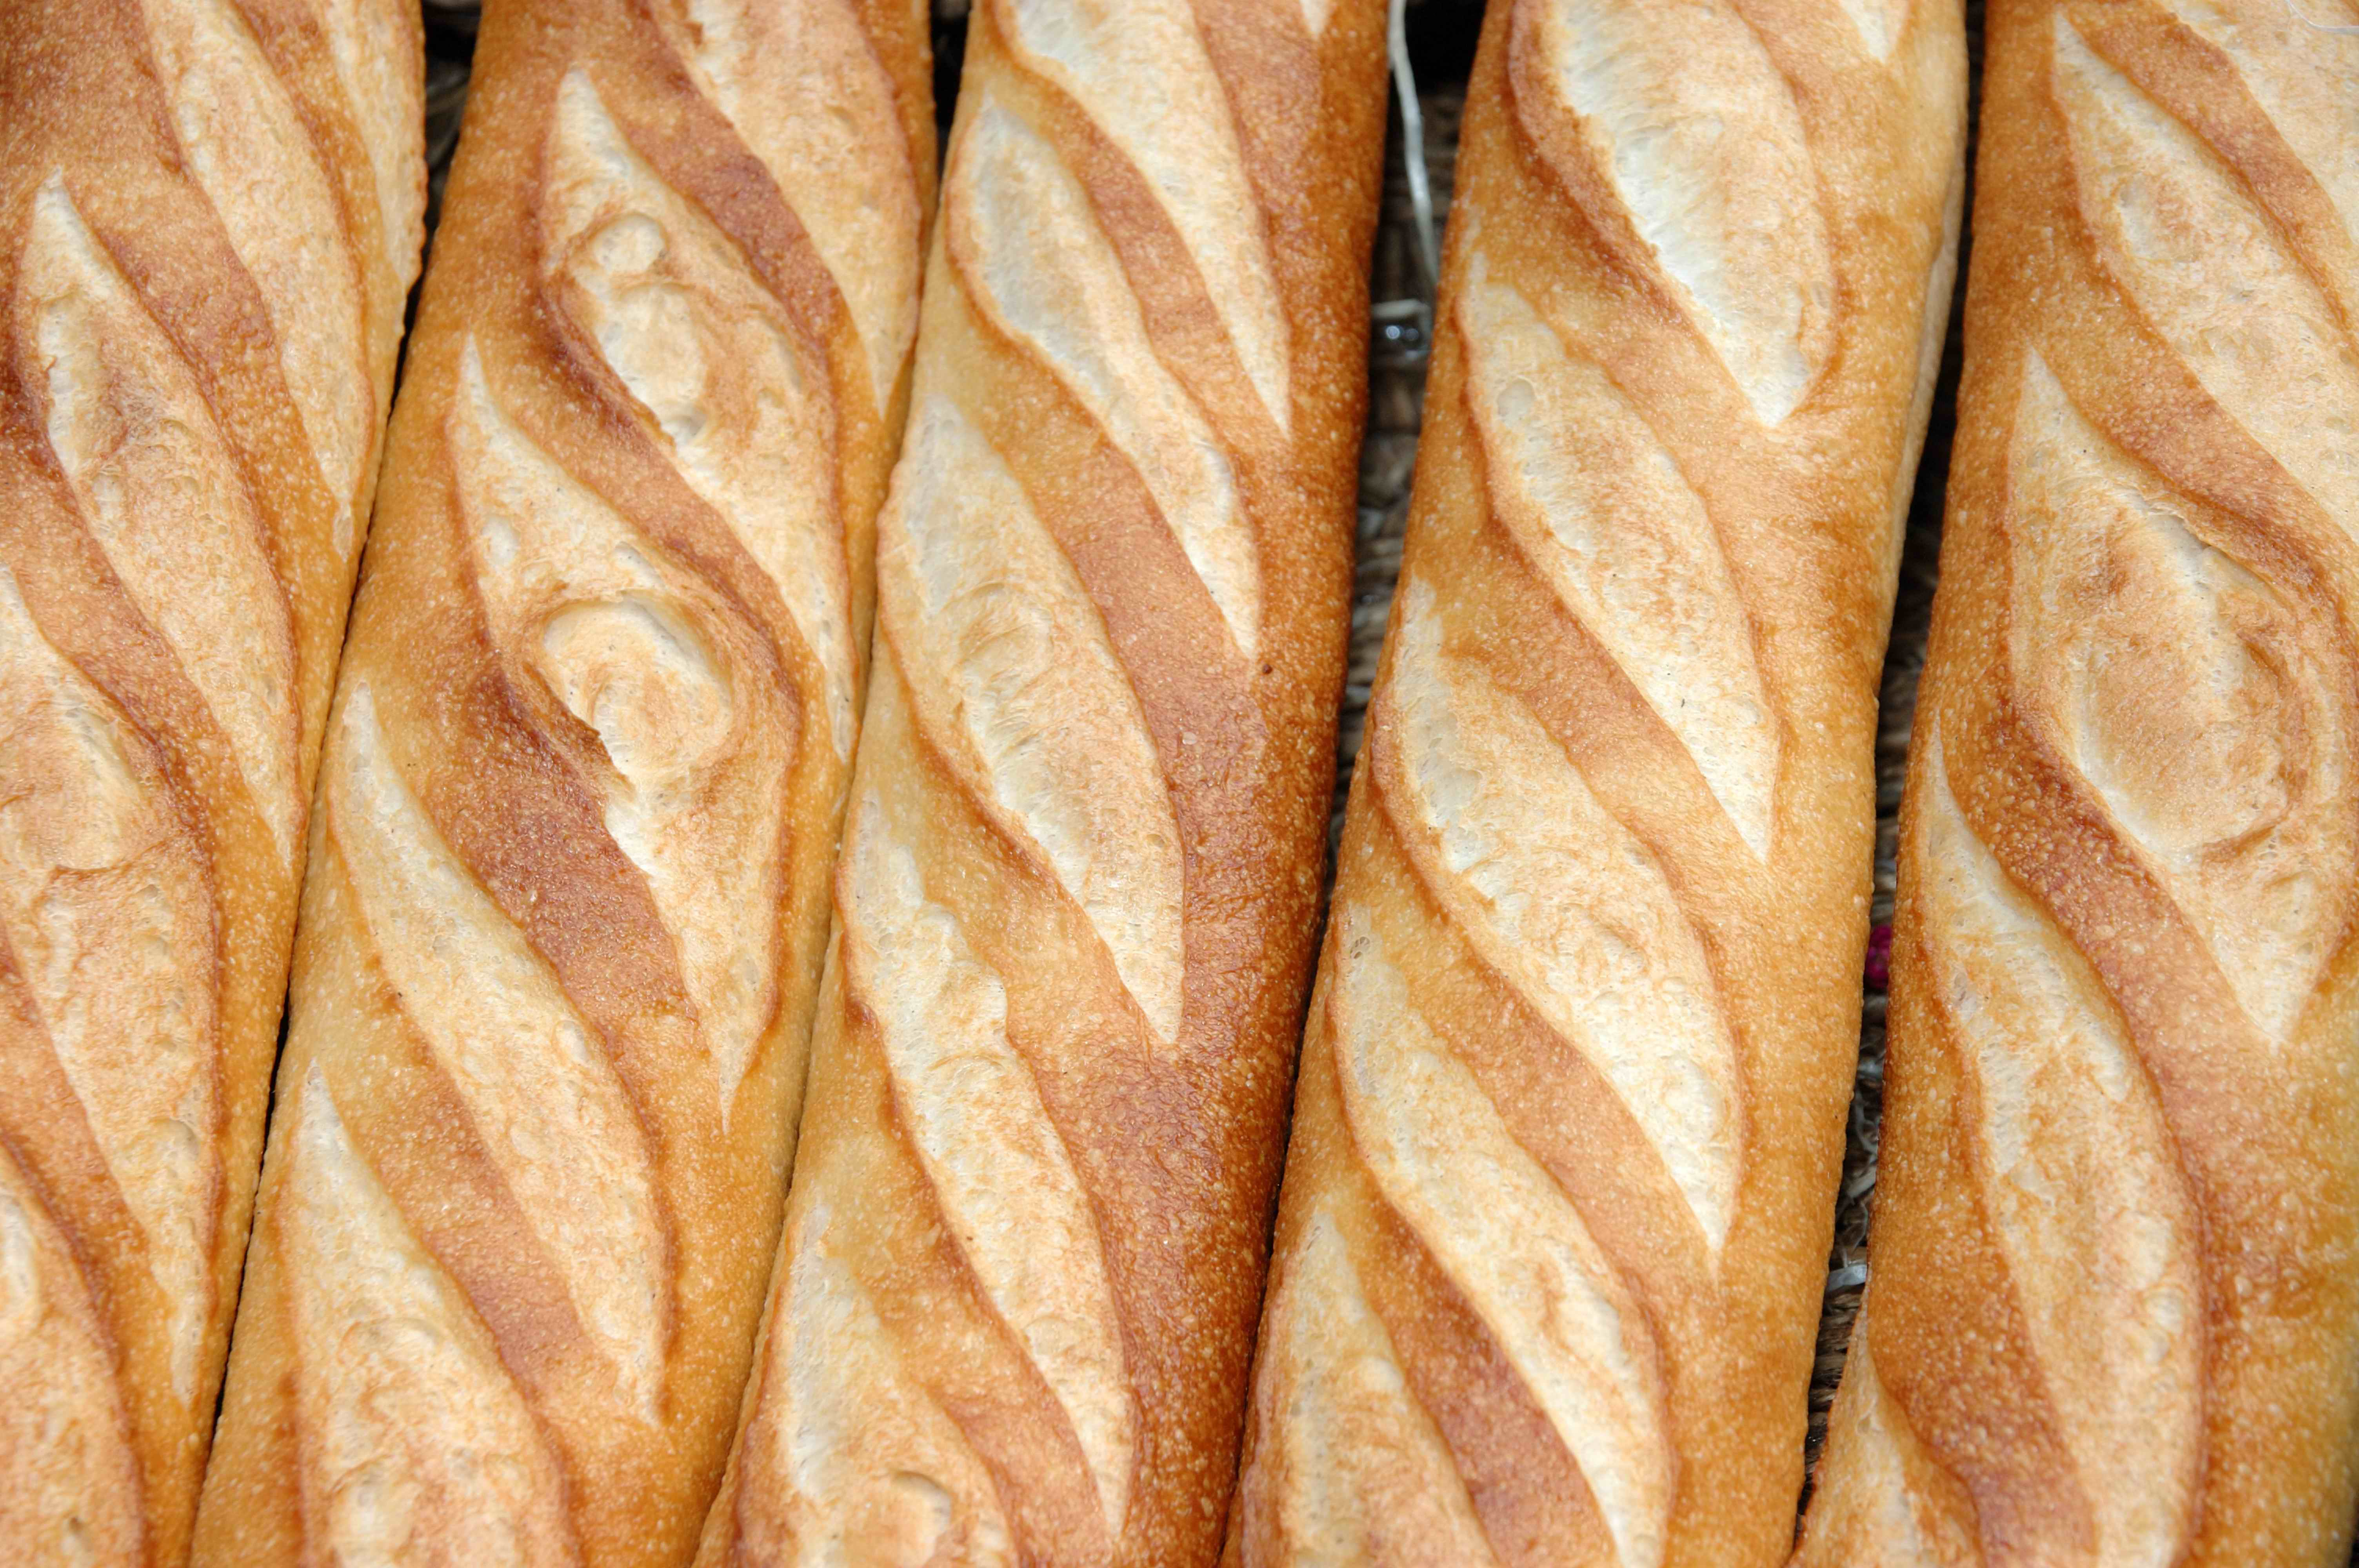 Paris Is Serious About Bread | Travel Between The Pages